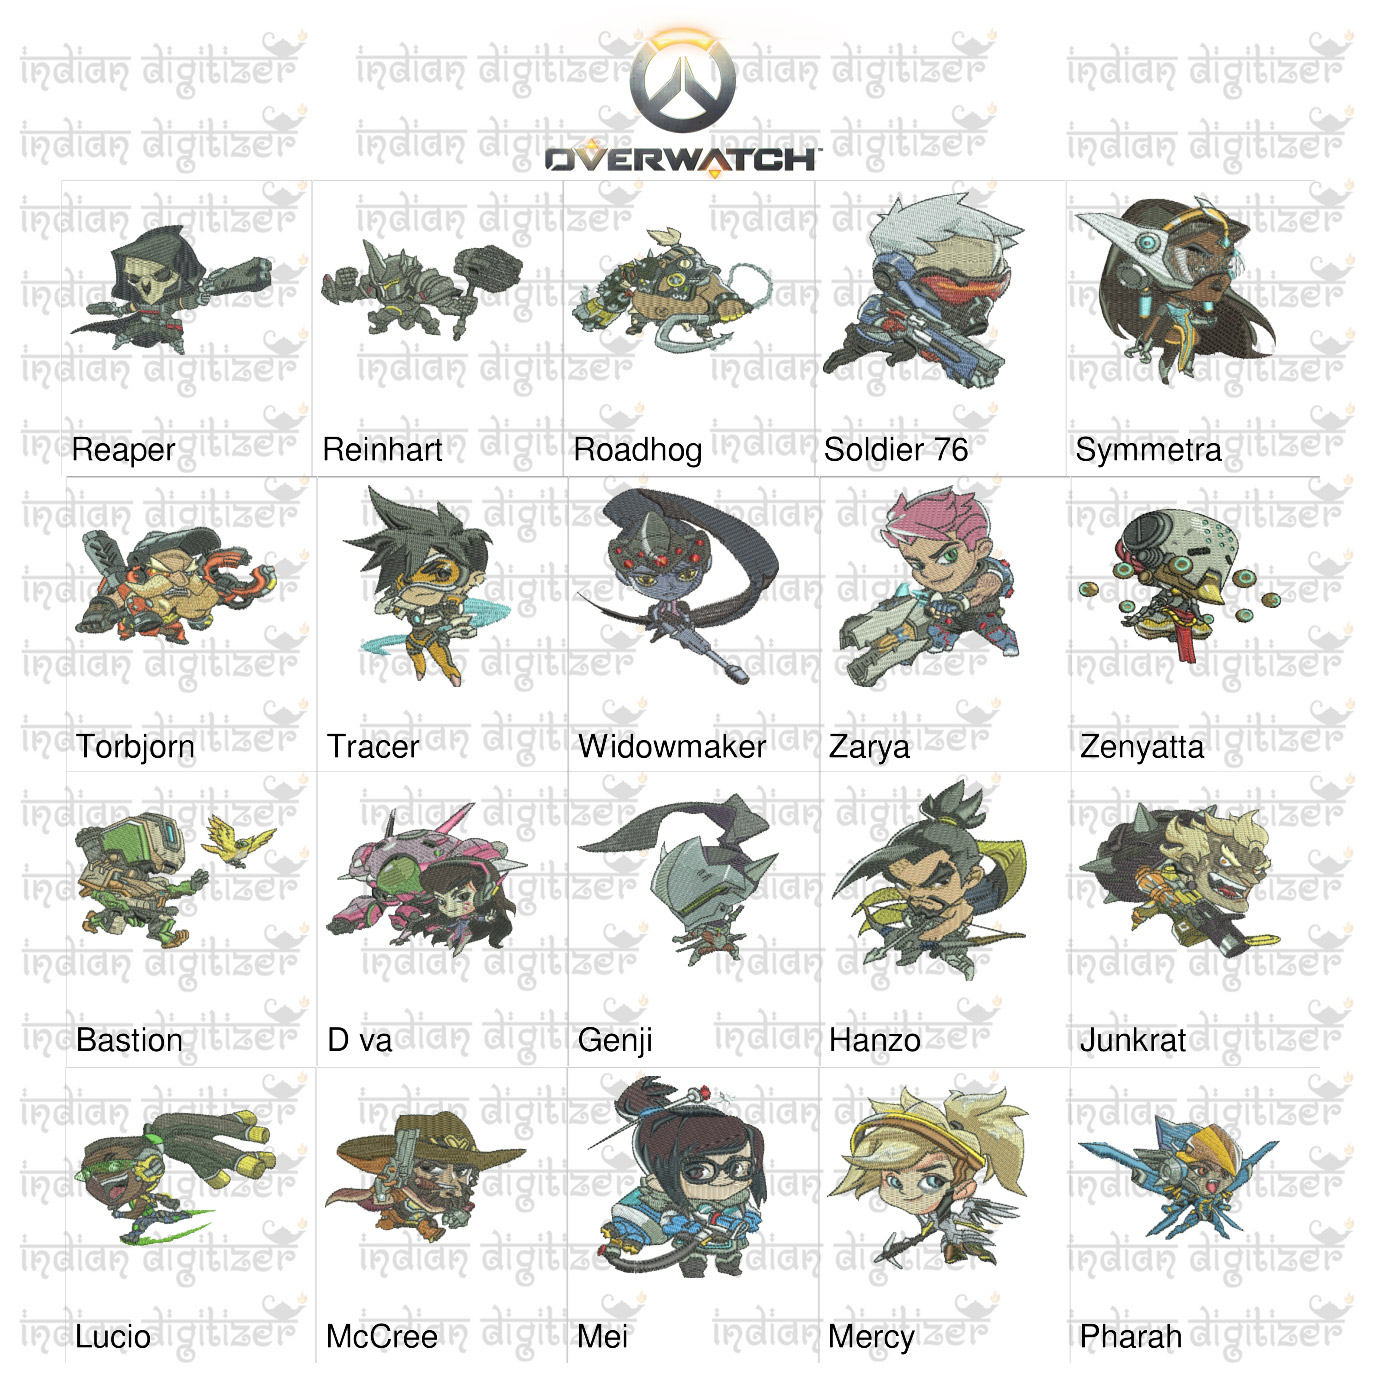 50% off - Overwatch Embroidery Designs - 20 individual characters for 4x4in hoop - resizable with freely downloadable software.